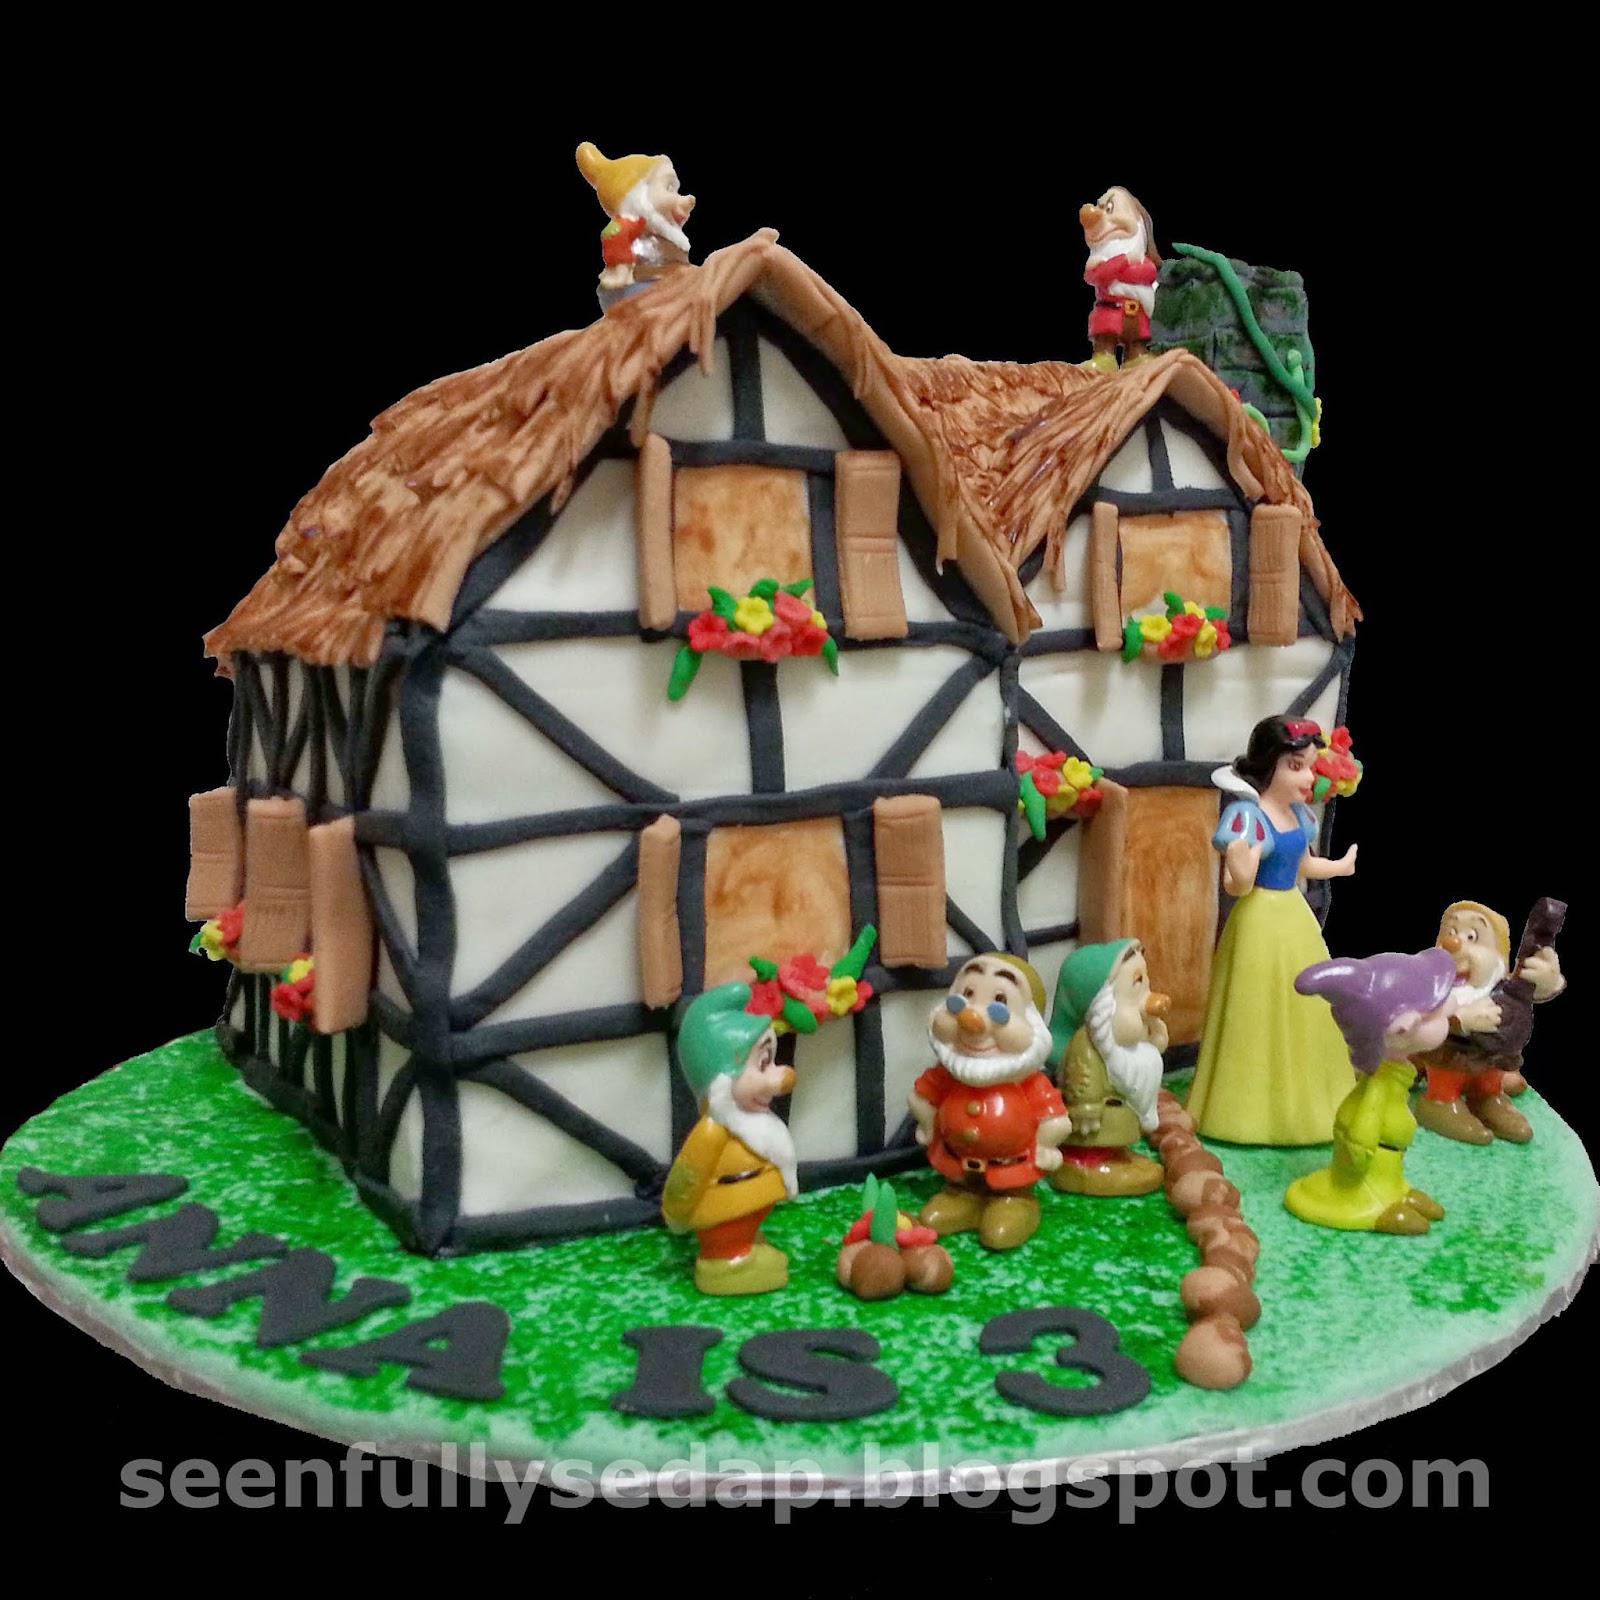 Seenfully Sedap Snow White And The 7 Dwarfs Cake